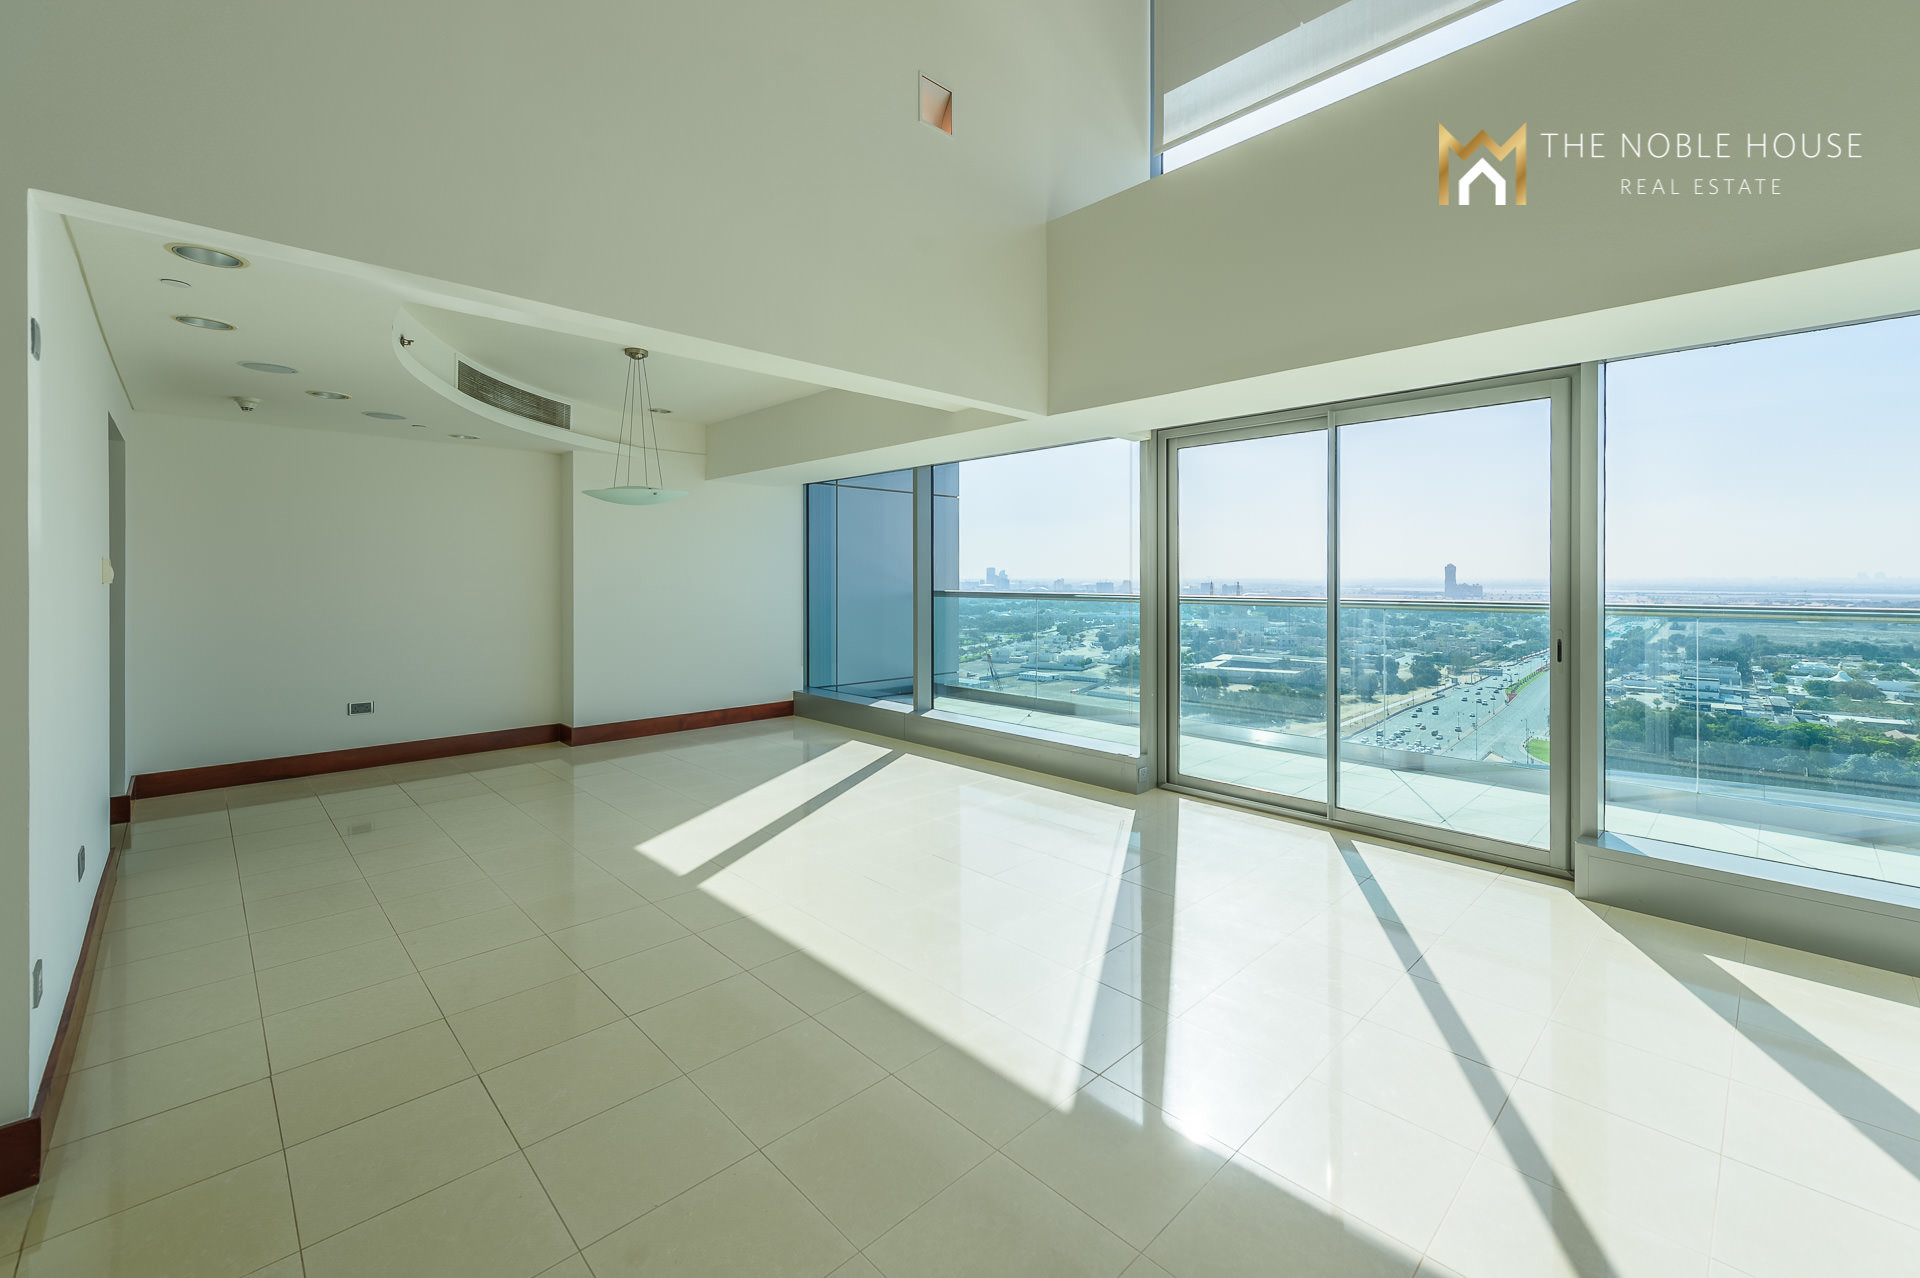 Ihram Kids For Sale Dubai: Apartment With Amazing Lay Out In WTC